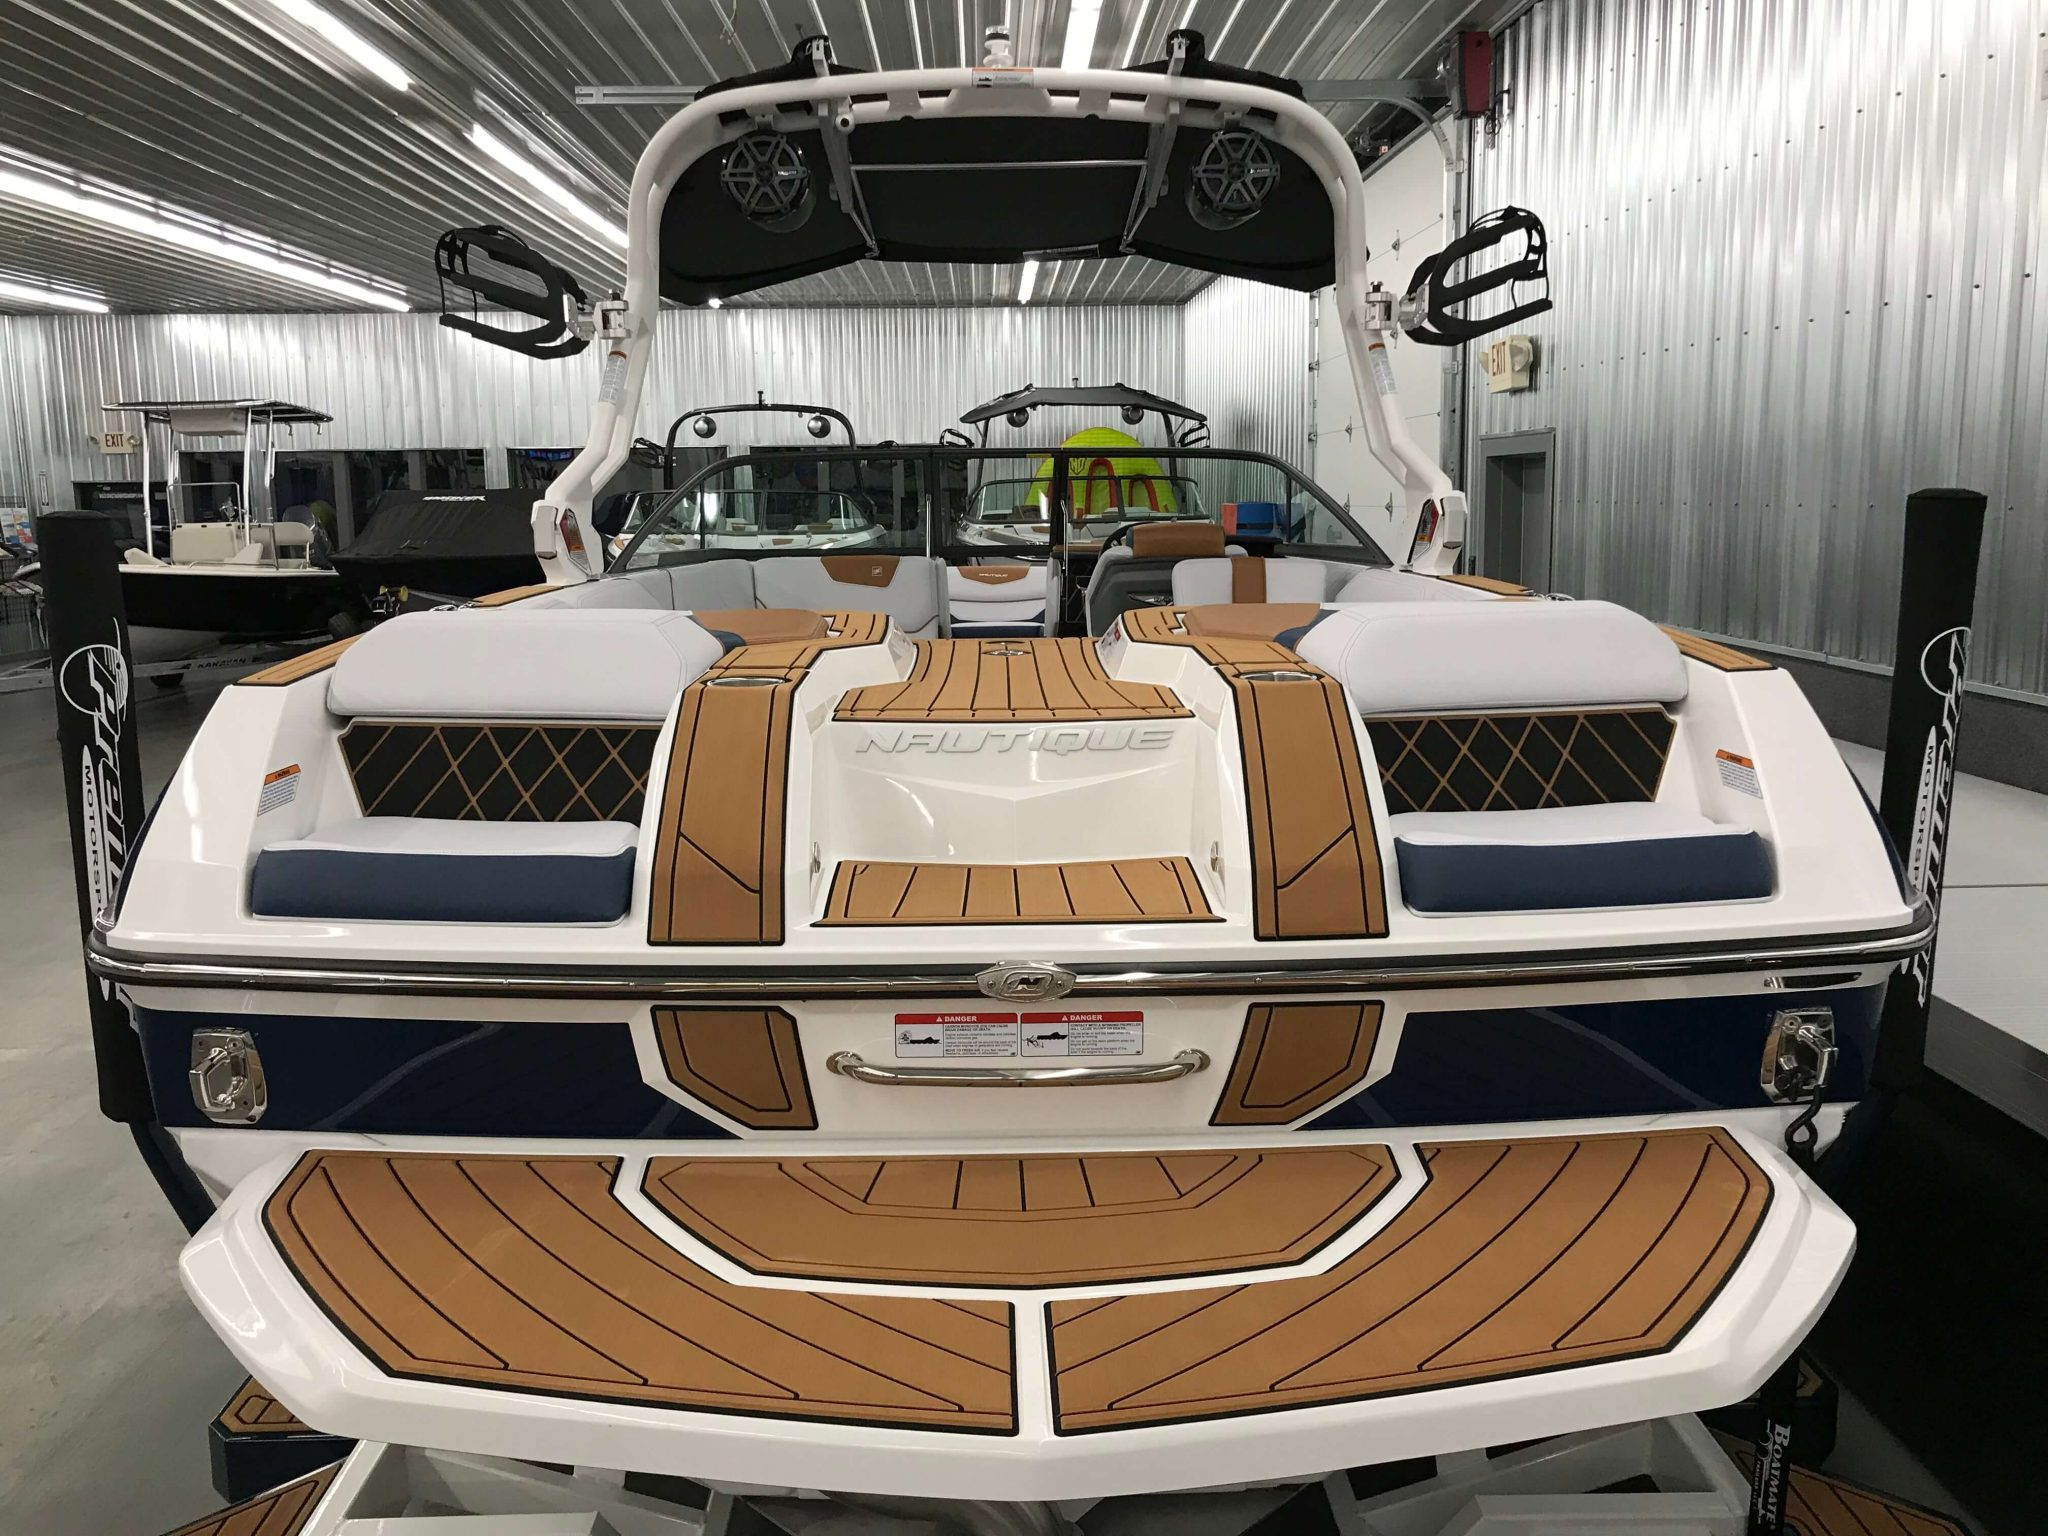 2019 Nautique GS22 Bimini Top Open Rear View 1